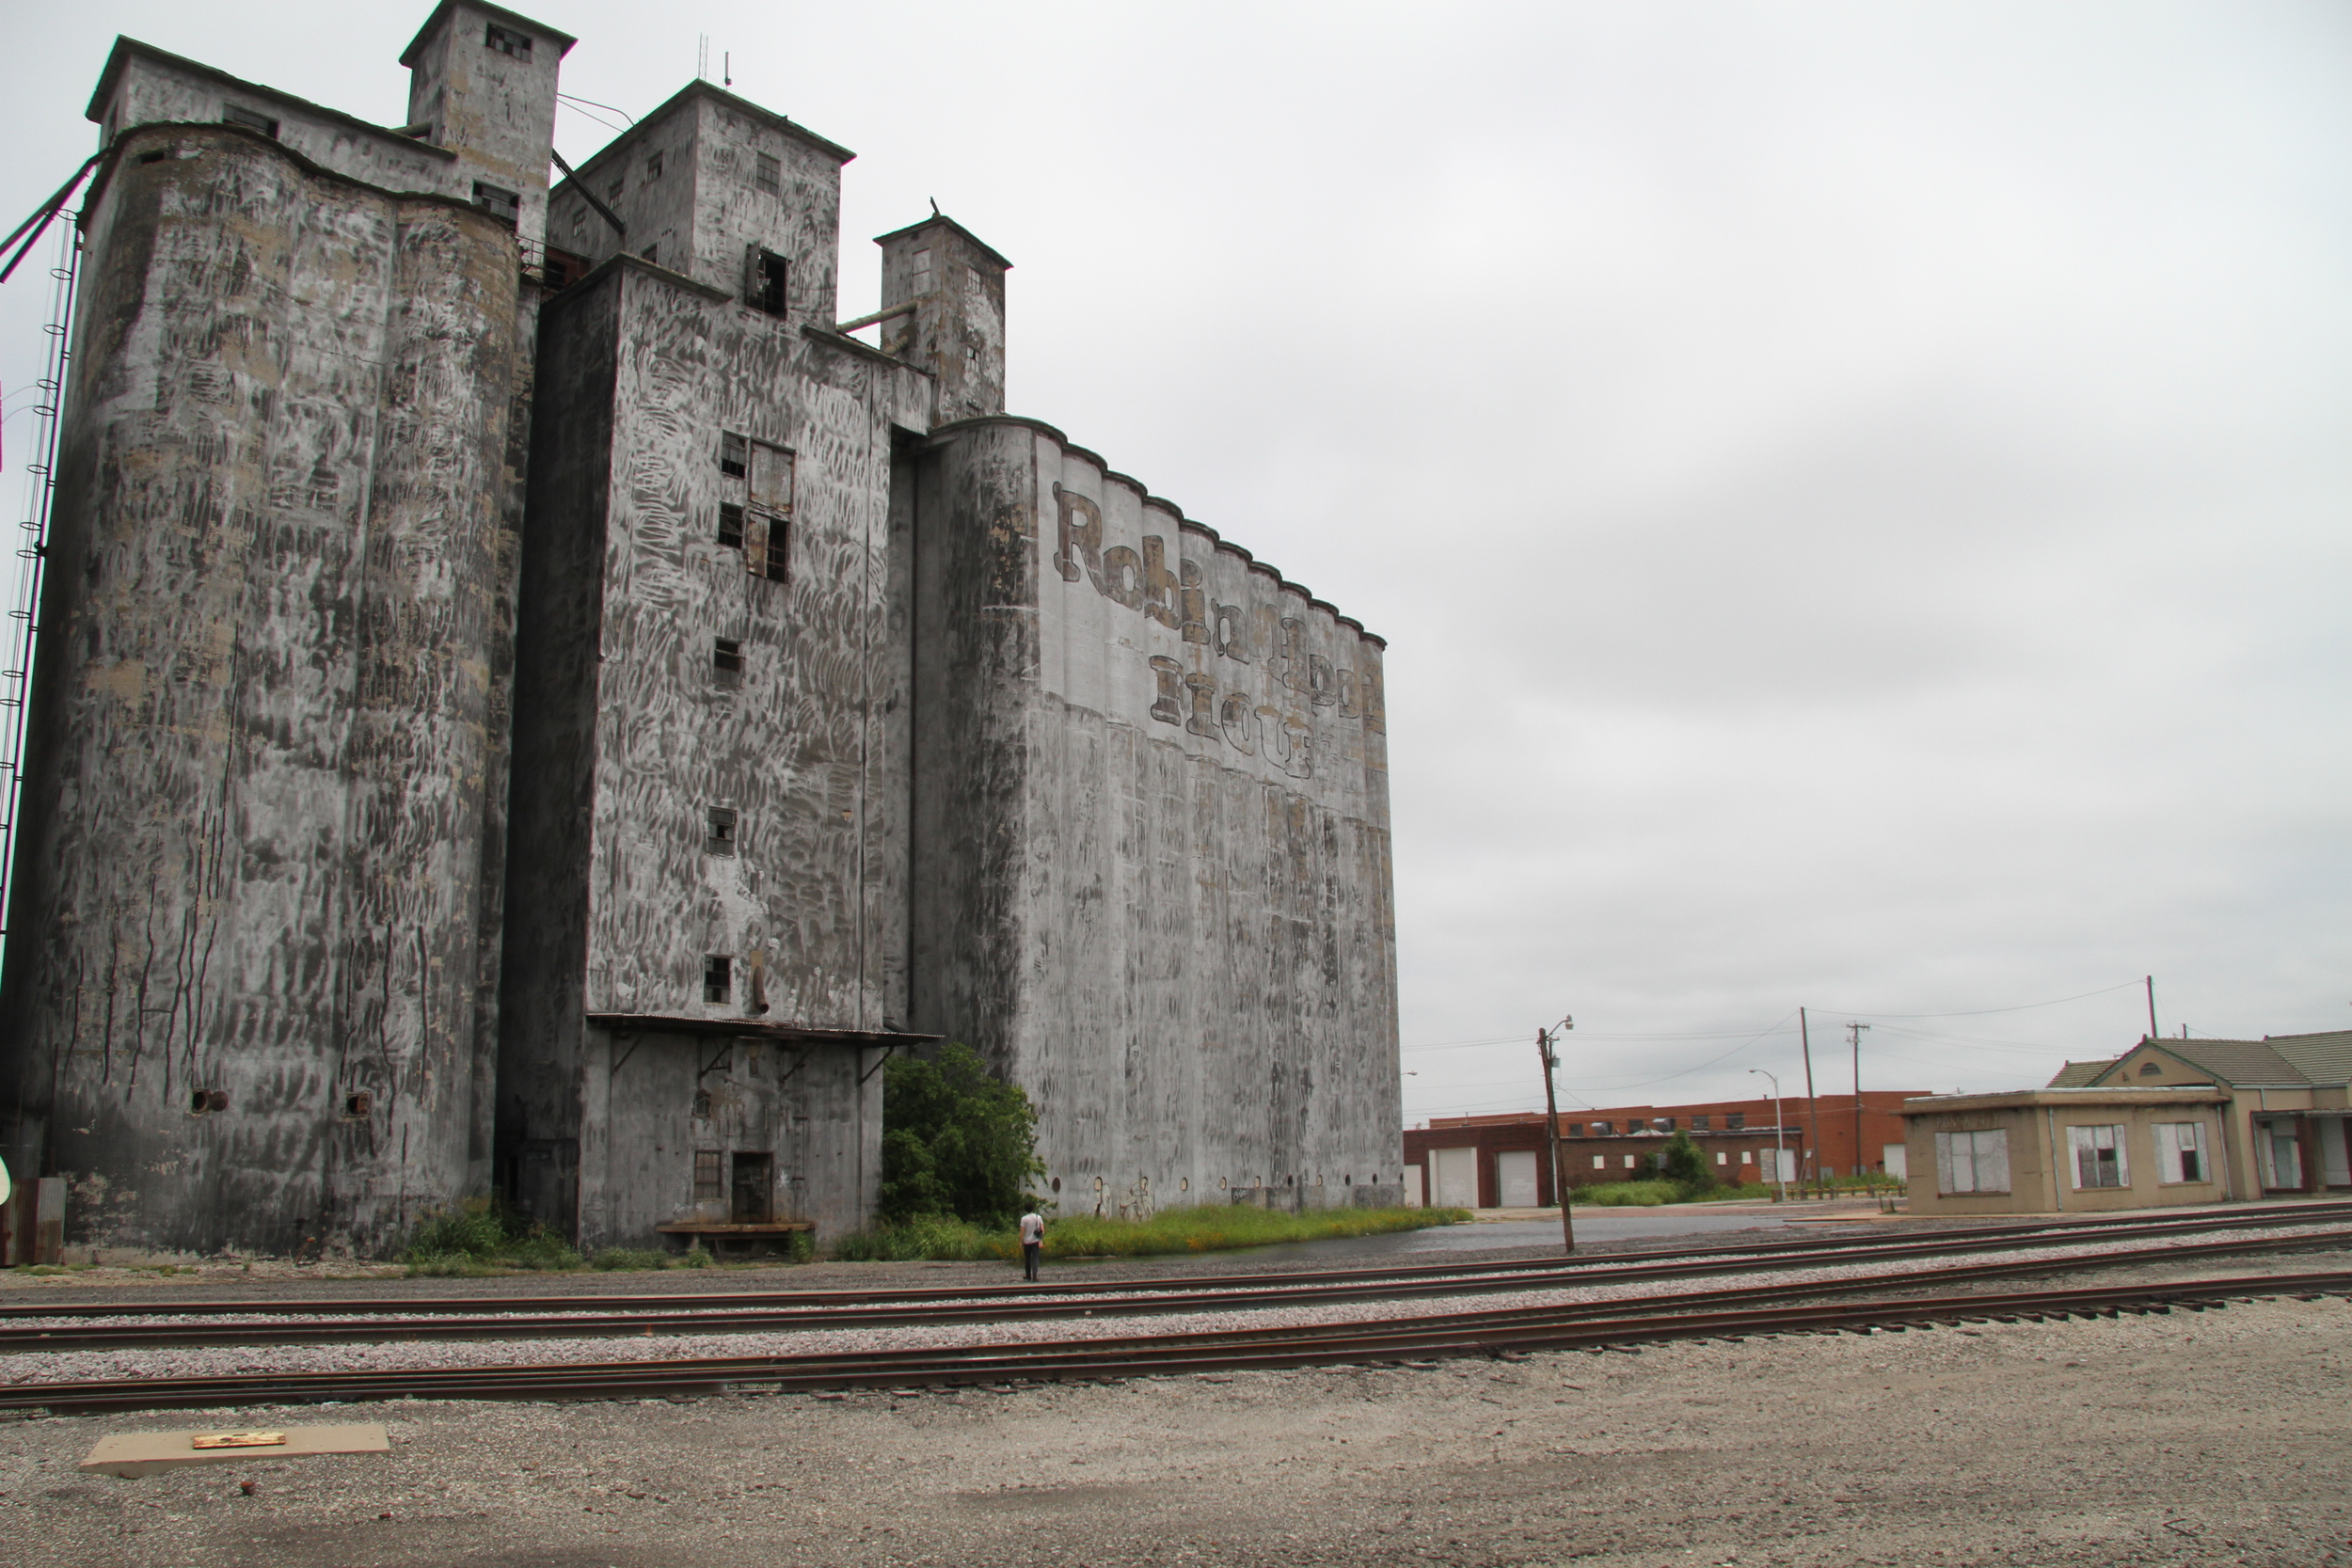 A visitor inspects an old Robin Hood Flour mill, now abandoned in Ponca City, Oklahoma. (2014)